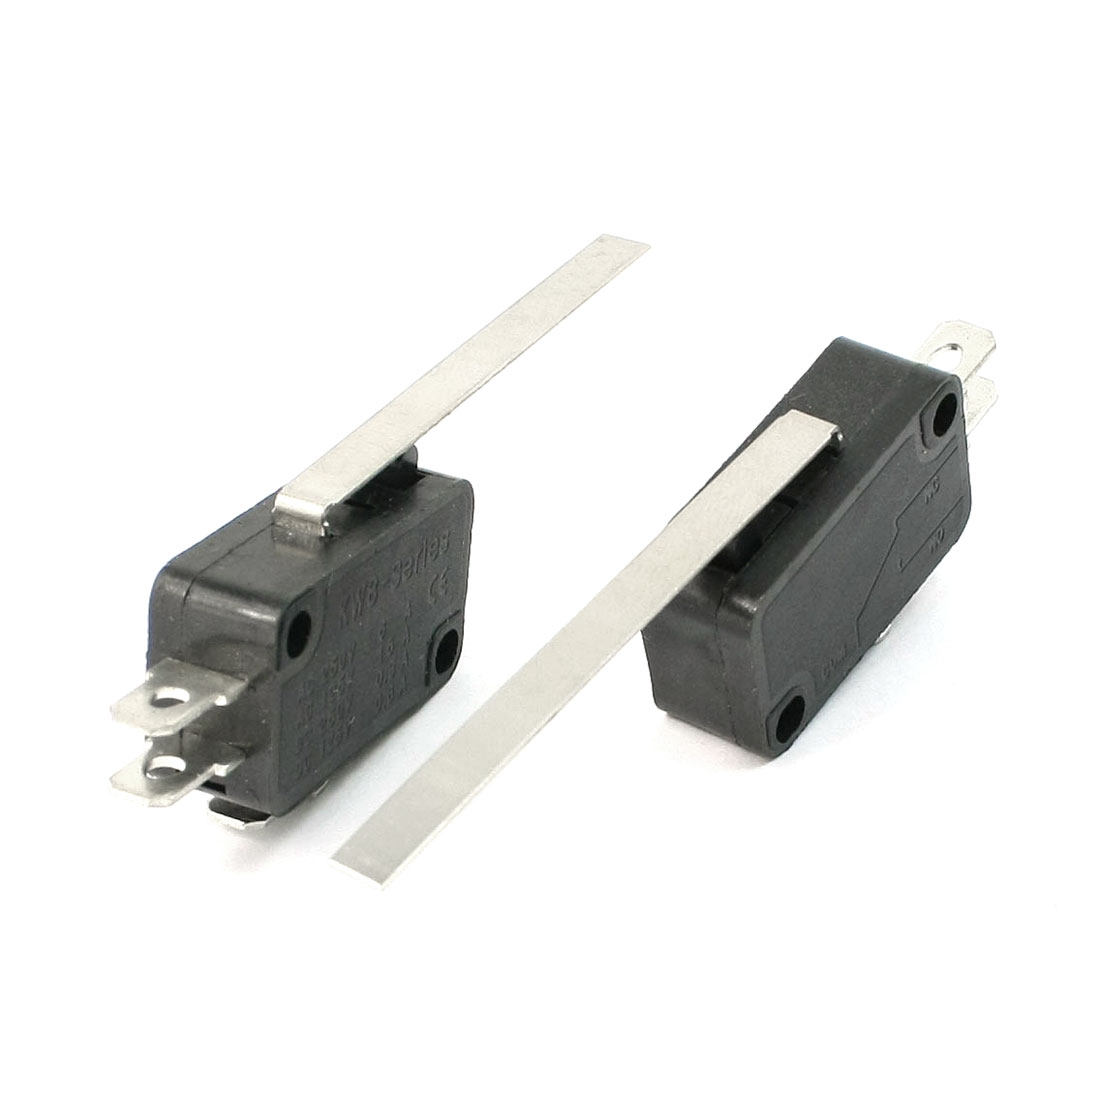 2PCS SPDT 3 Terminal Long Straight Hinge Lever Momentary KW8-Series Micro Switch